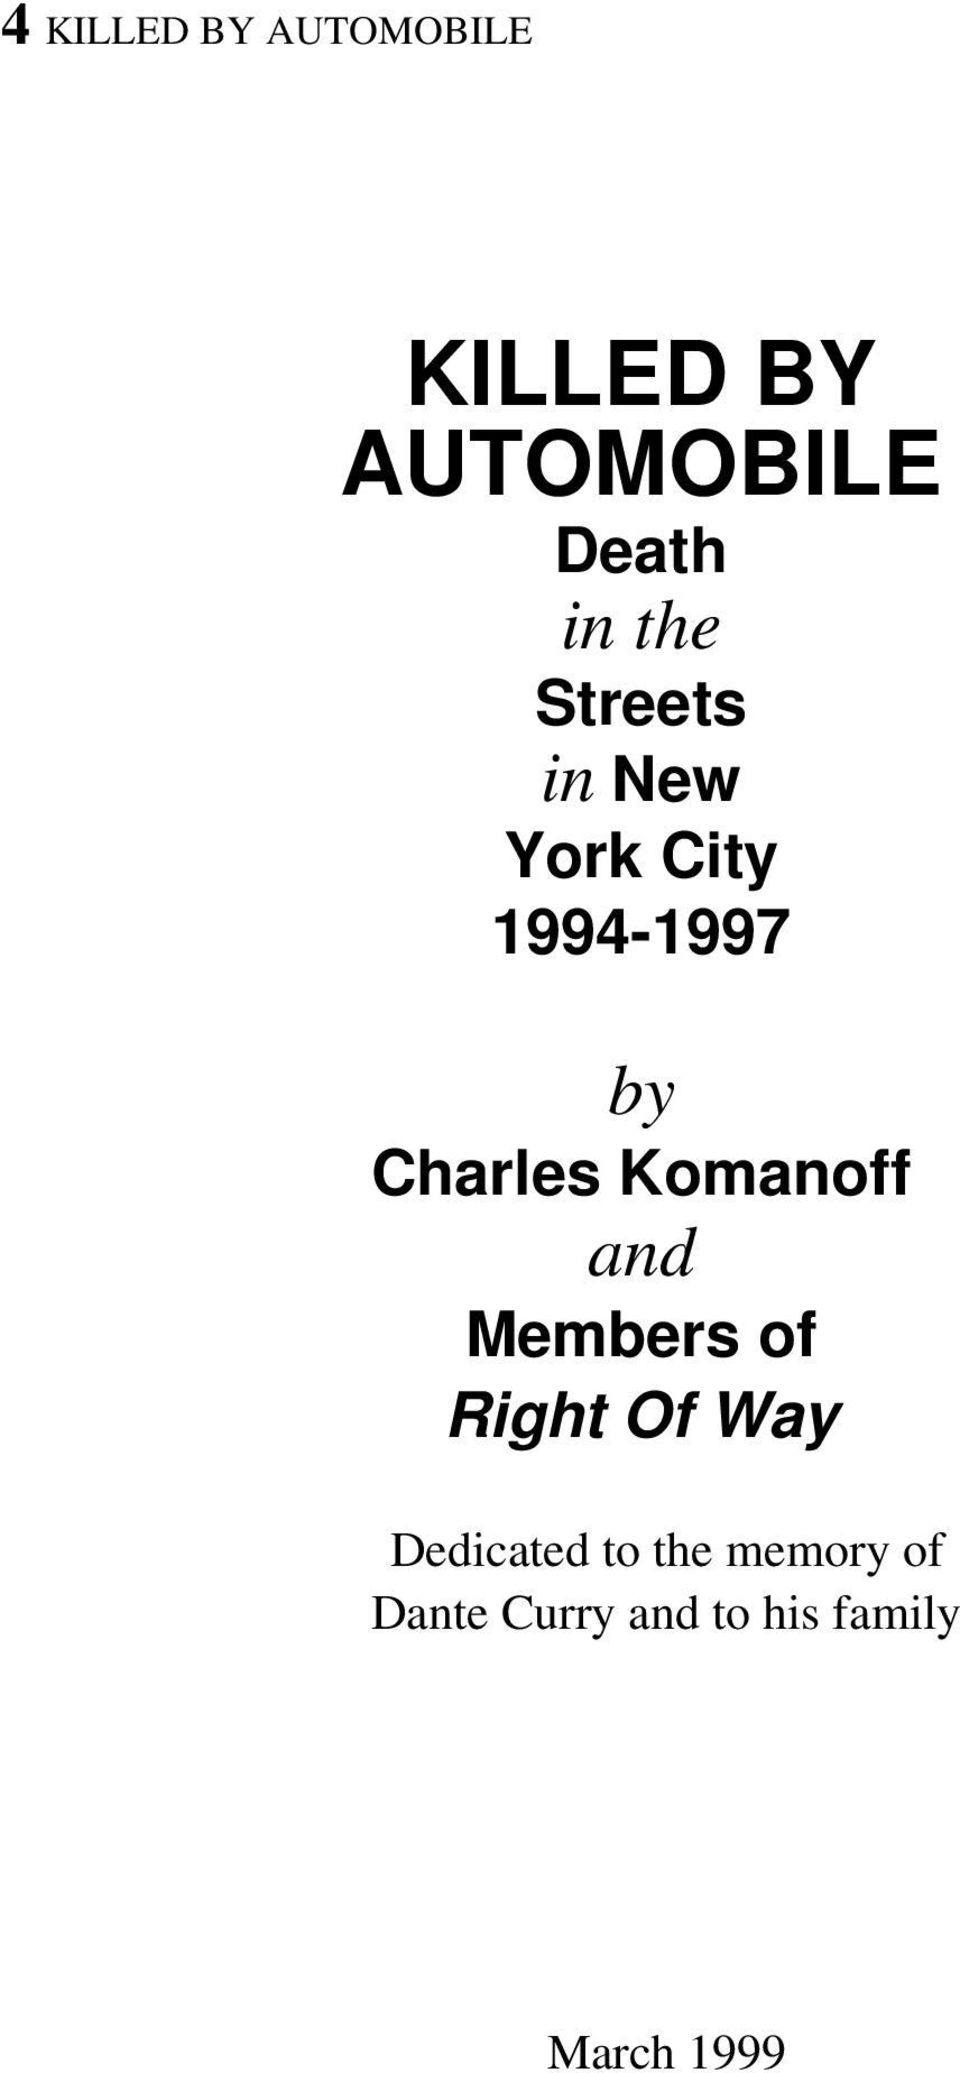 Charles Komanoff and Members of Right Of Way